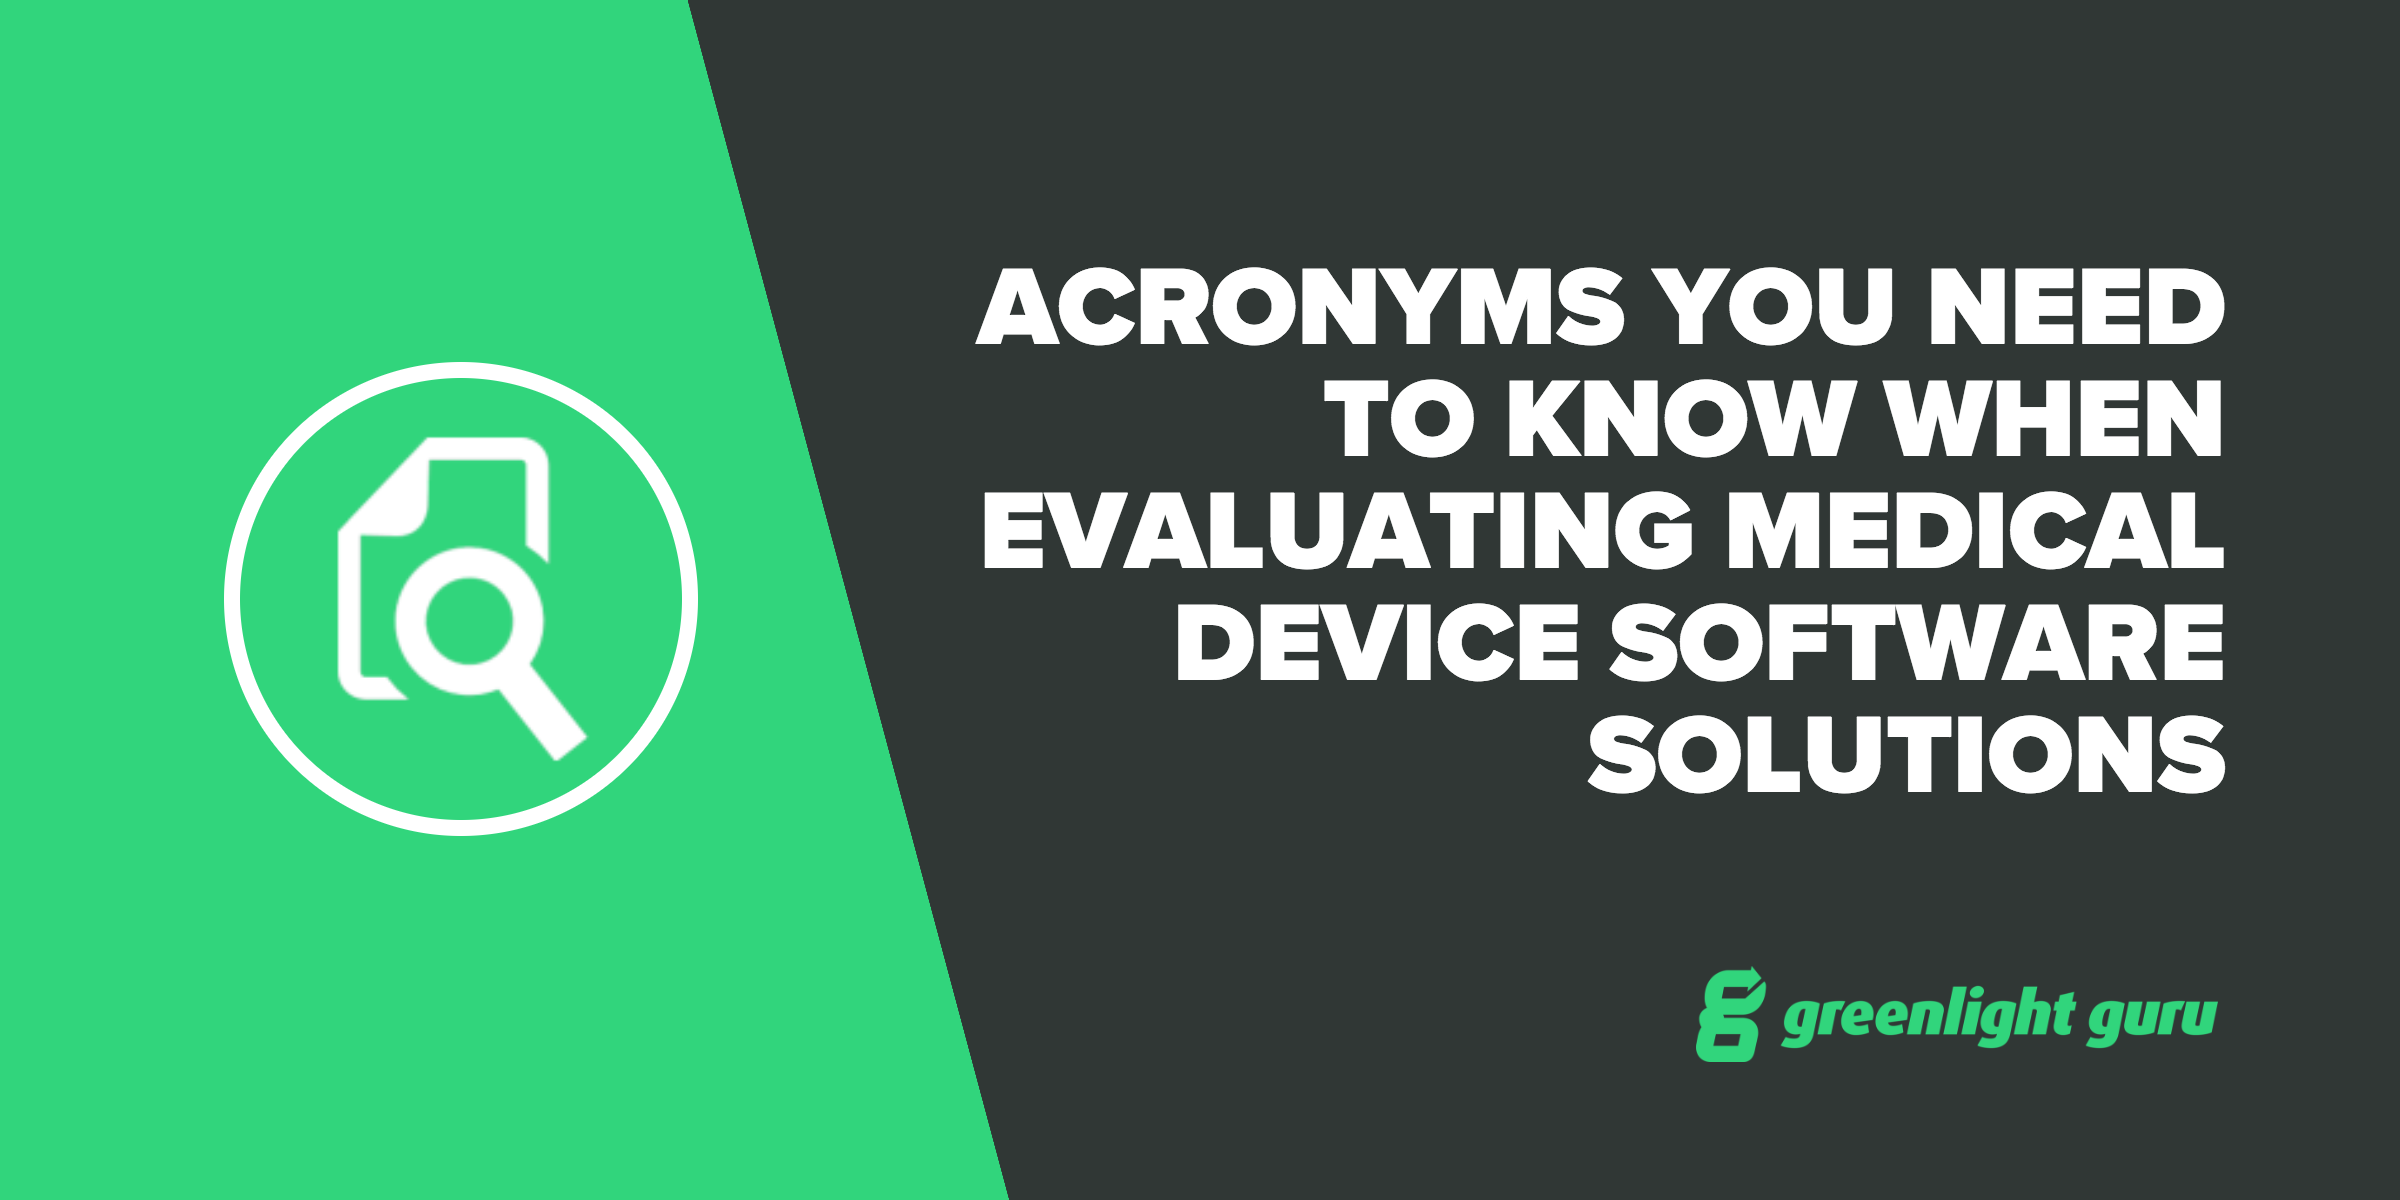 Acronyms You Need To Know When Evaluating Medical Device Software Solutions - Featured Image